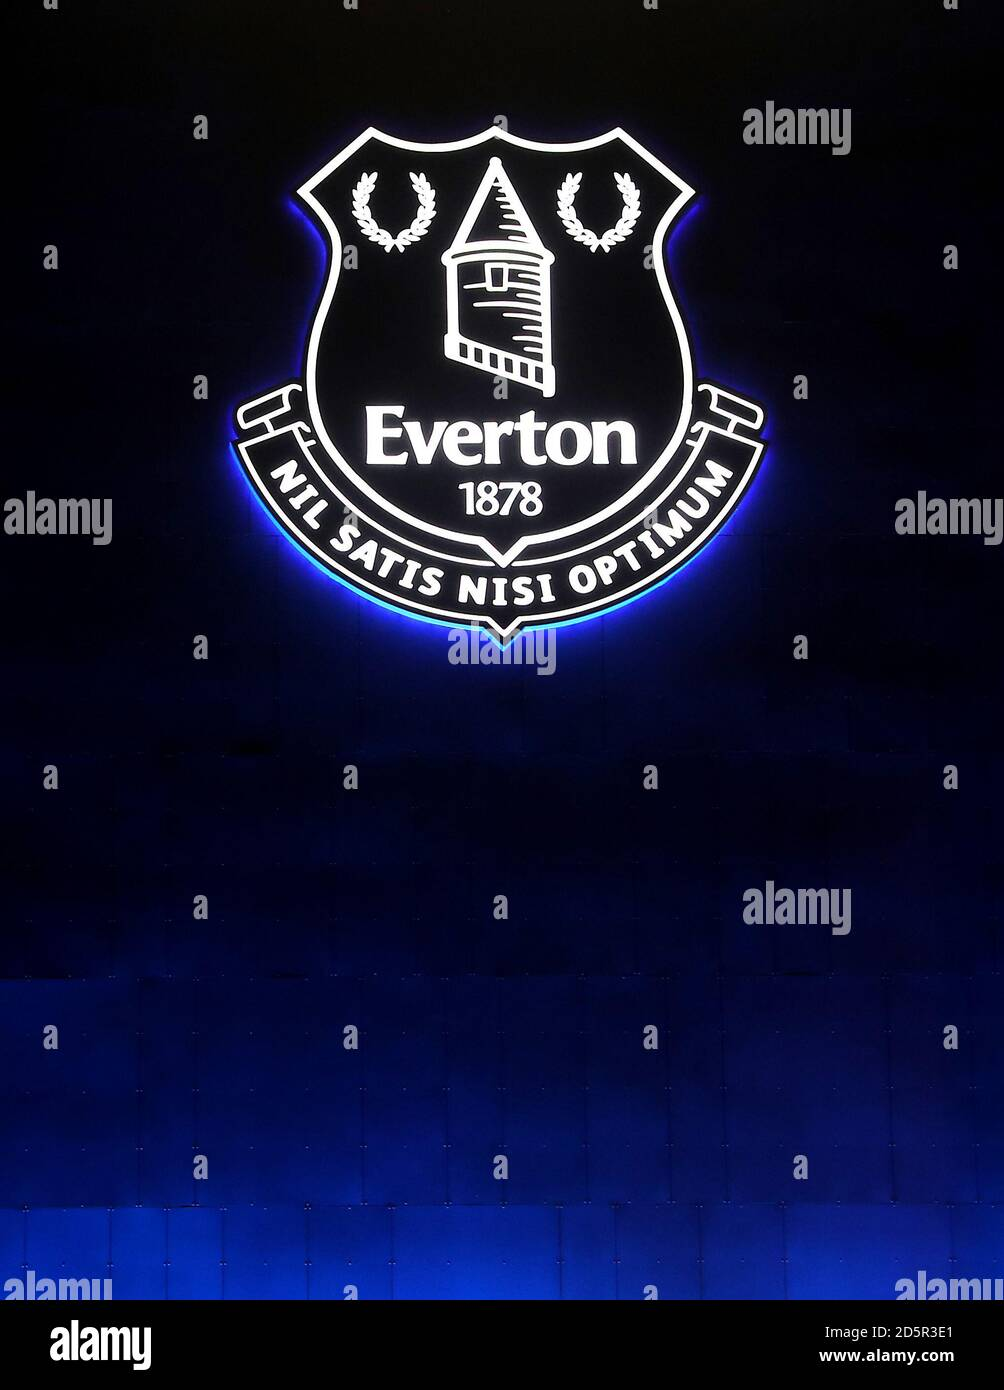 Everton Badge High Resolution Stock Photography And Images Alamy